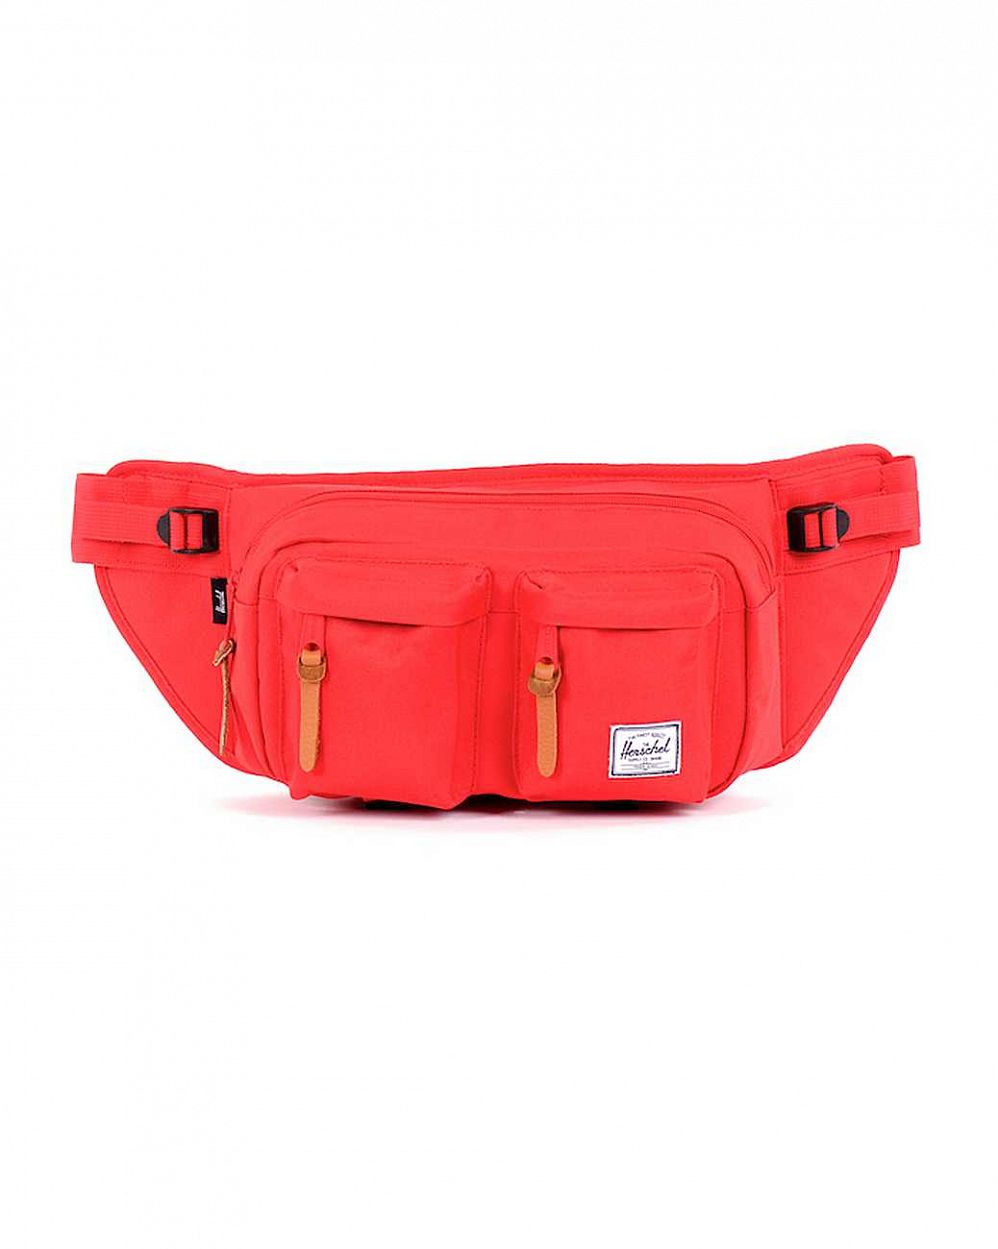 Сумка поясная Herschel Eighteen Red отзывы